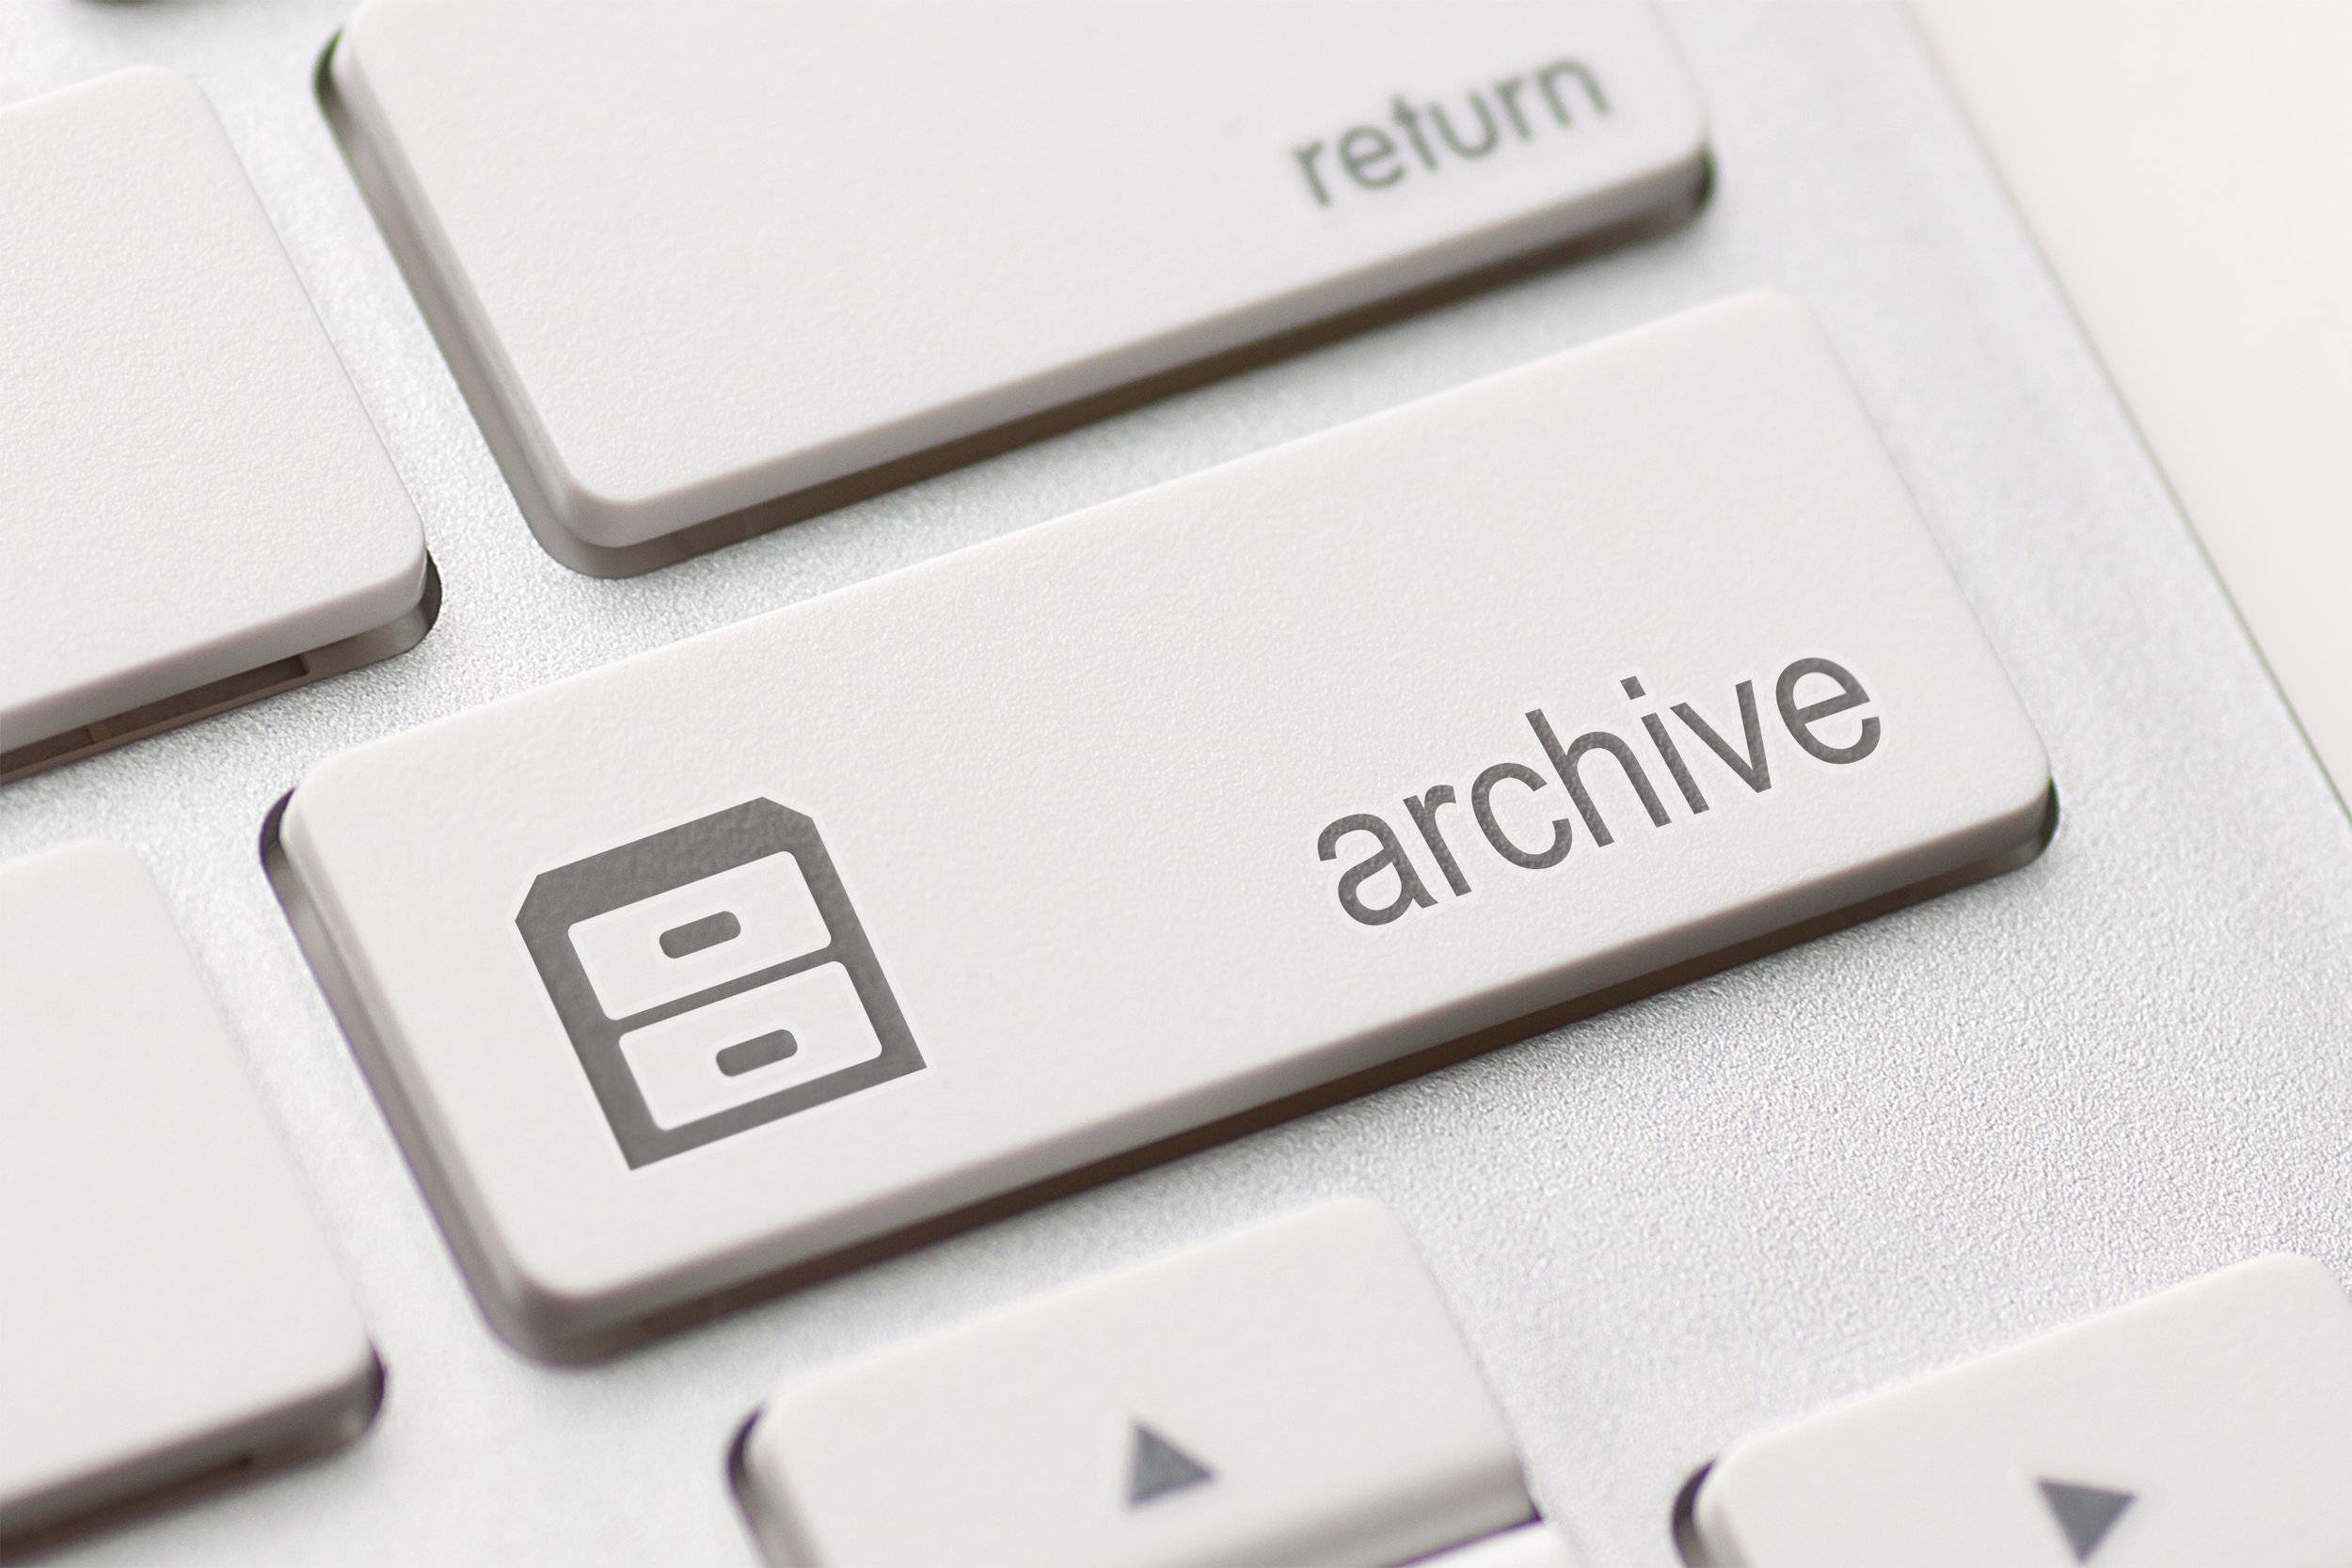 Email Archiving  Full email archiving service with guaranteed indefinite retention available with Compliance Review if necessary.  Full Hosted Exchange Cloud to Cloud backup is also available.